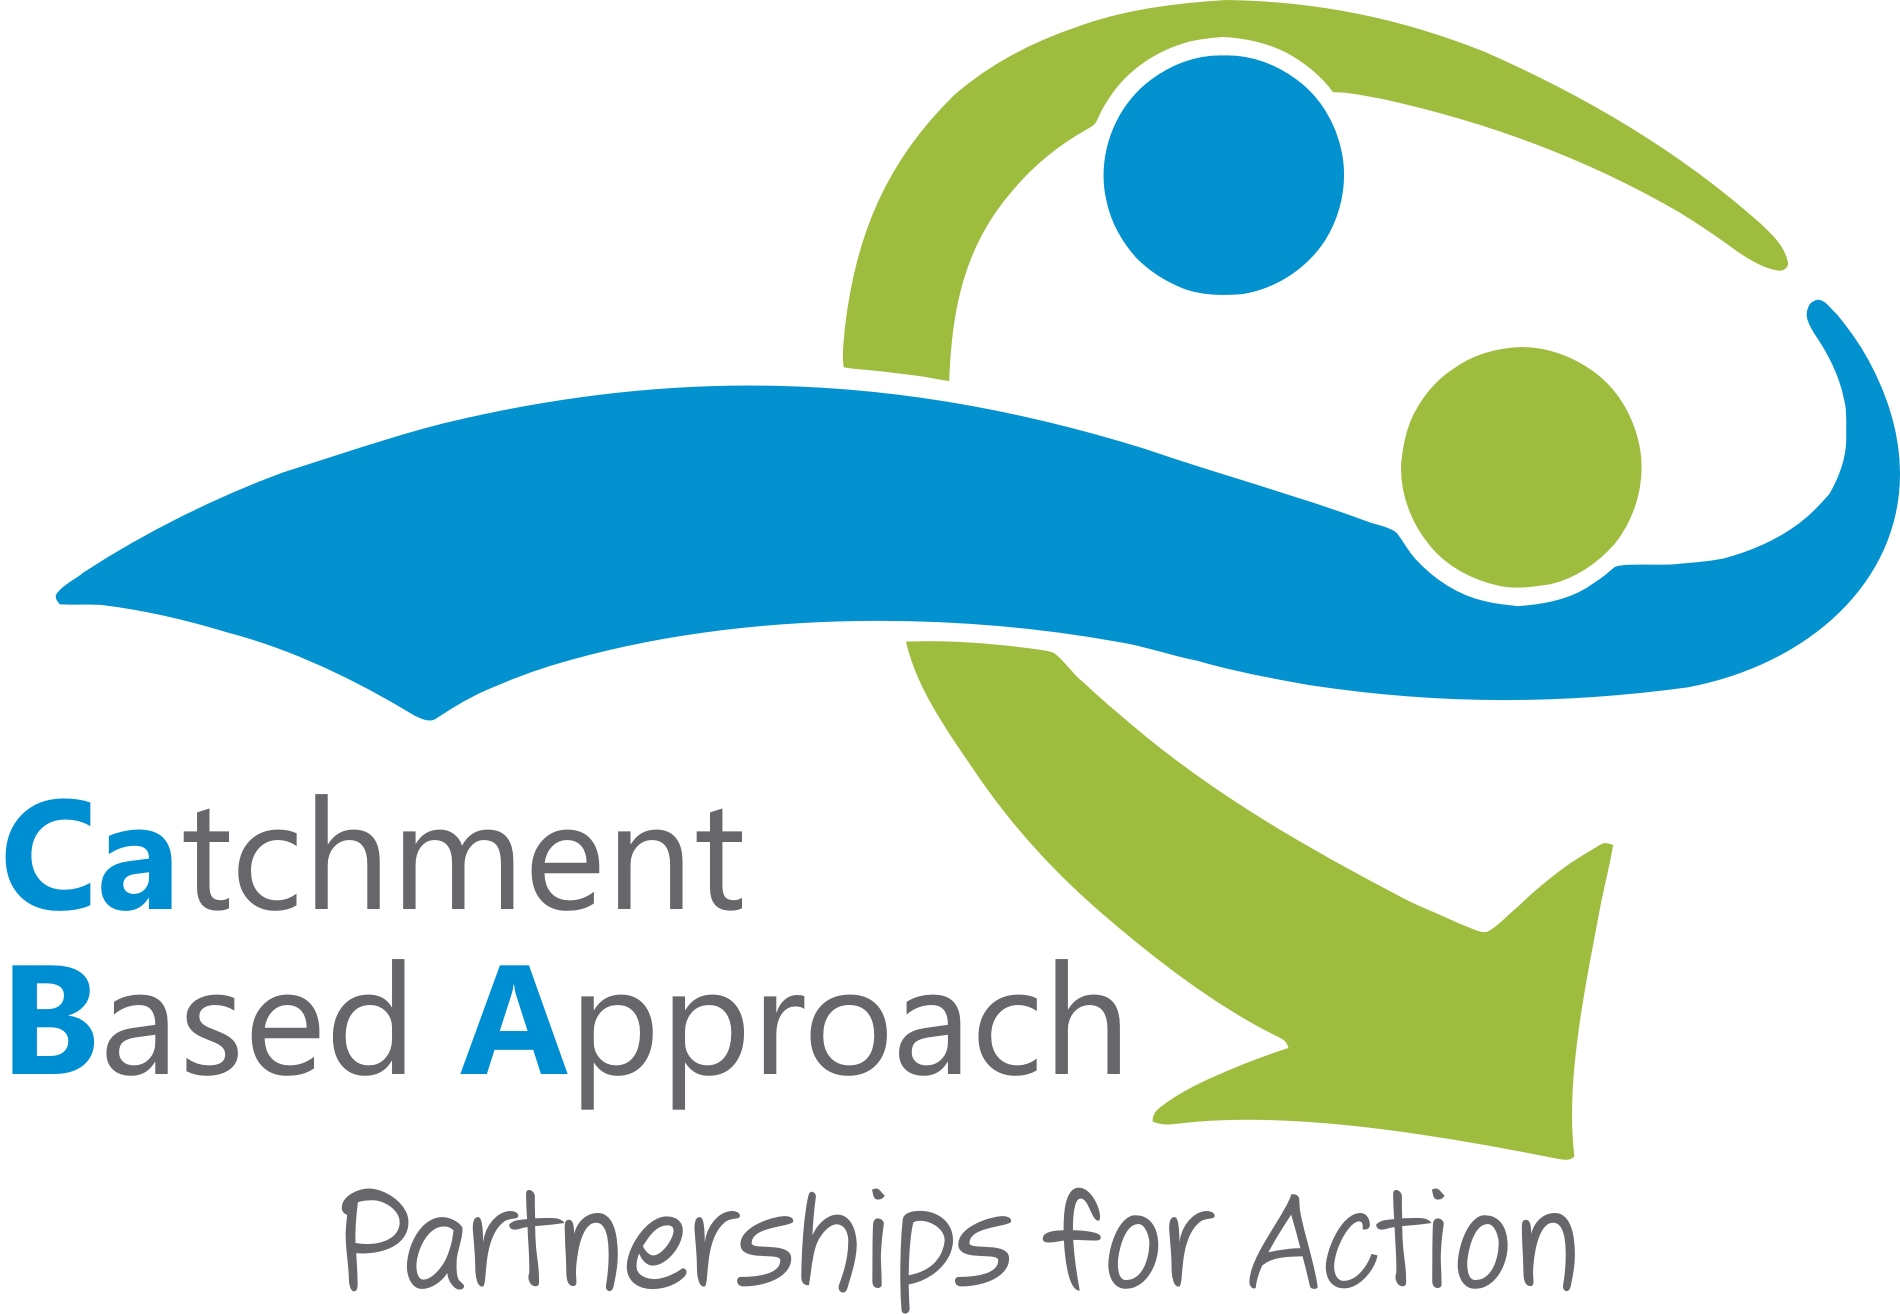 We are supporters of the catchment-based approach